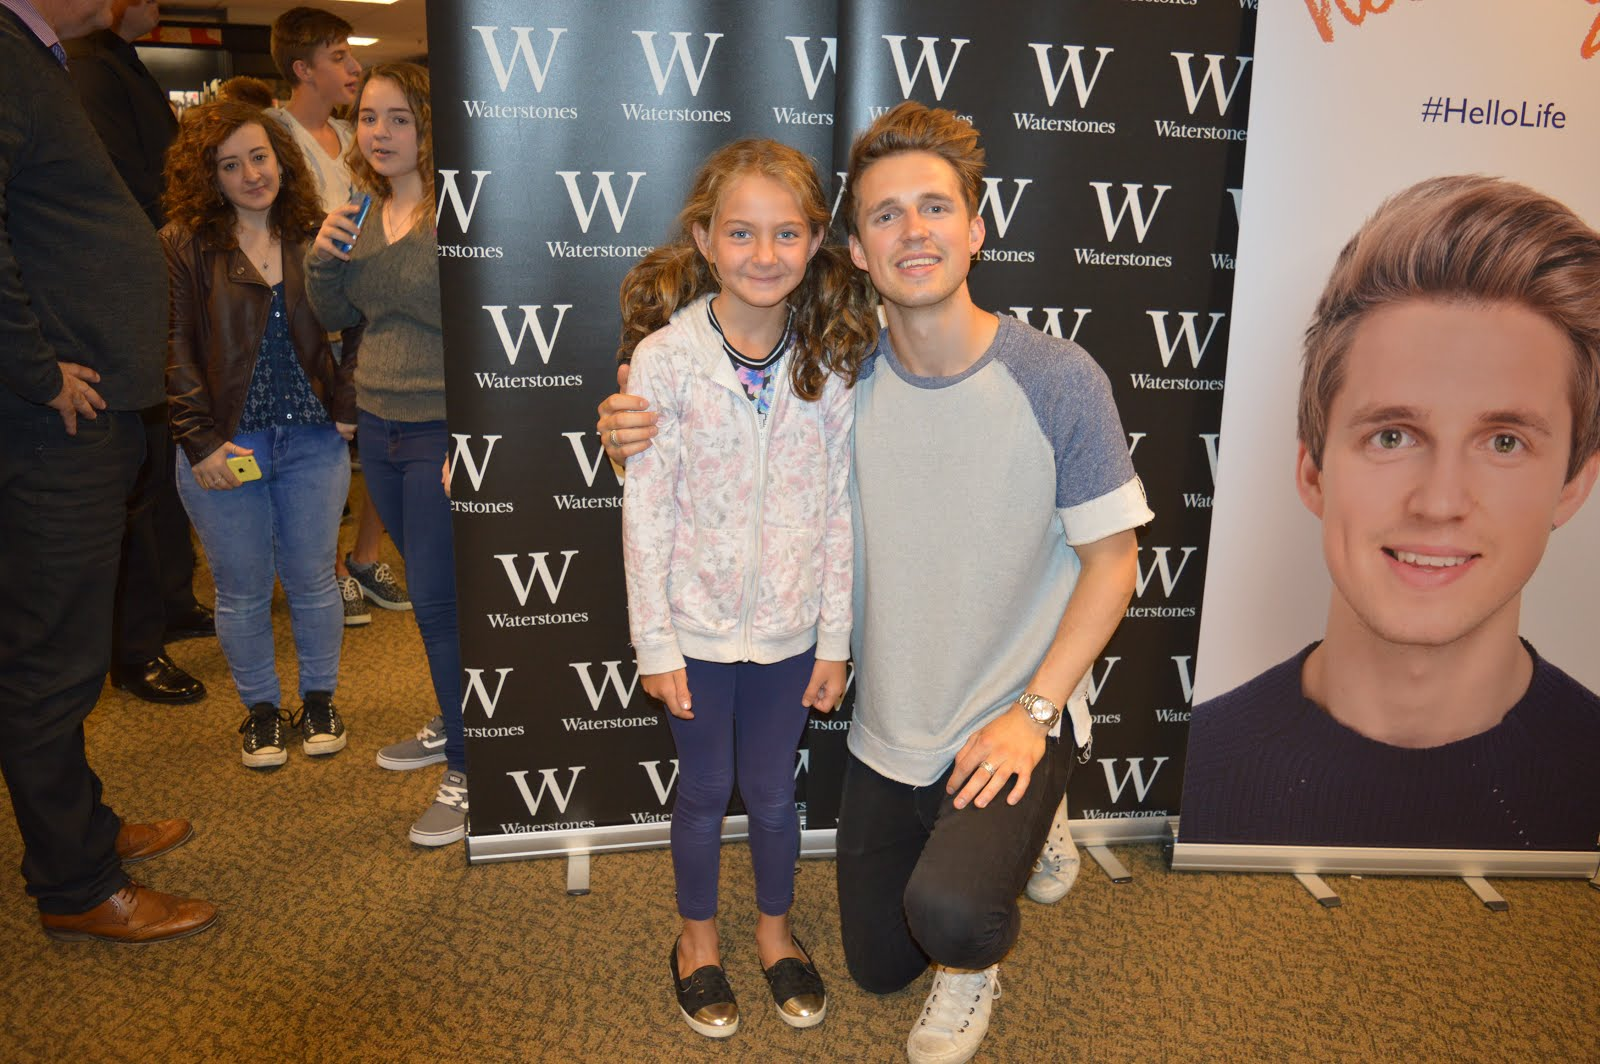 MEETING MARCUS BUTLER➜